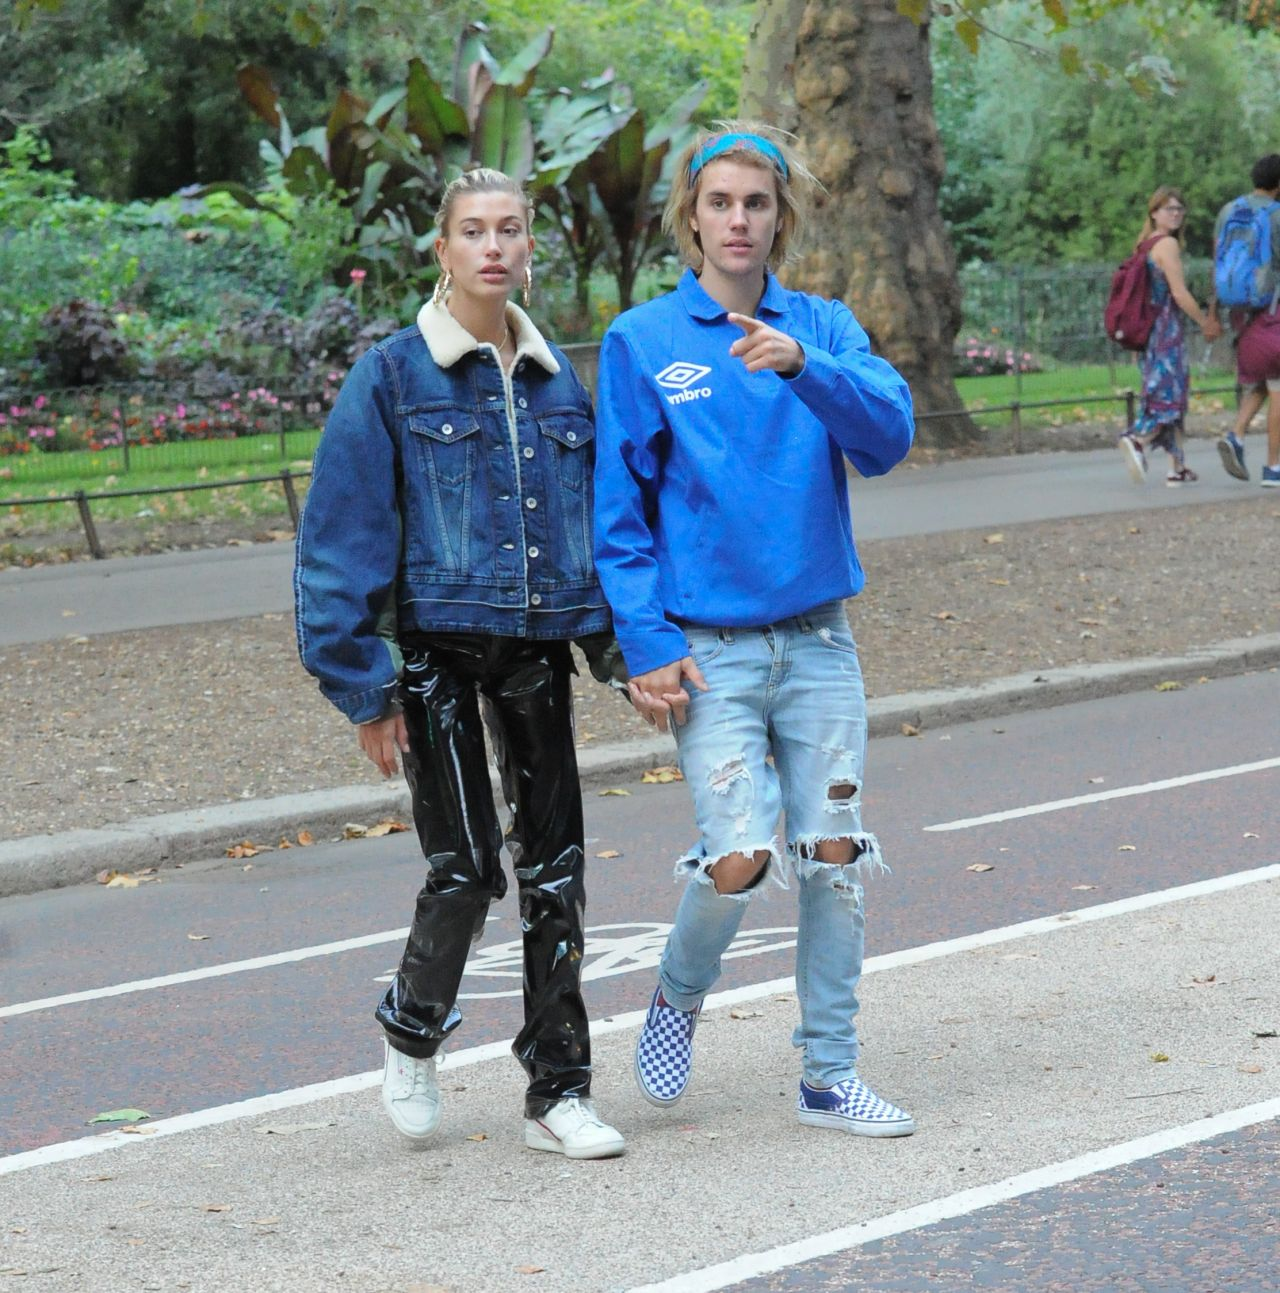 ¿Cuánto mide Justin Bieber? - Altura: 1,73 - Real height - Página 4 Hailey-baldwin-and-justin-bieber-in-london-09-17-2018-11